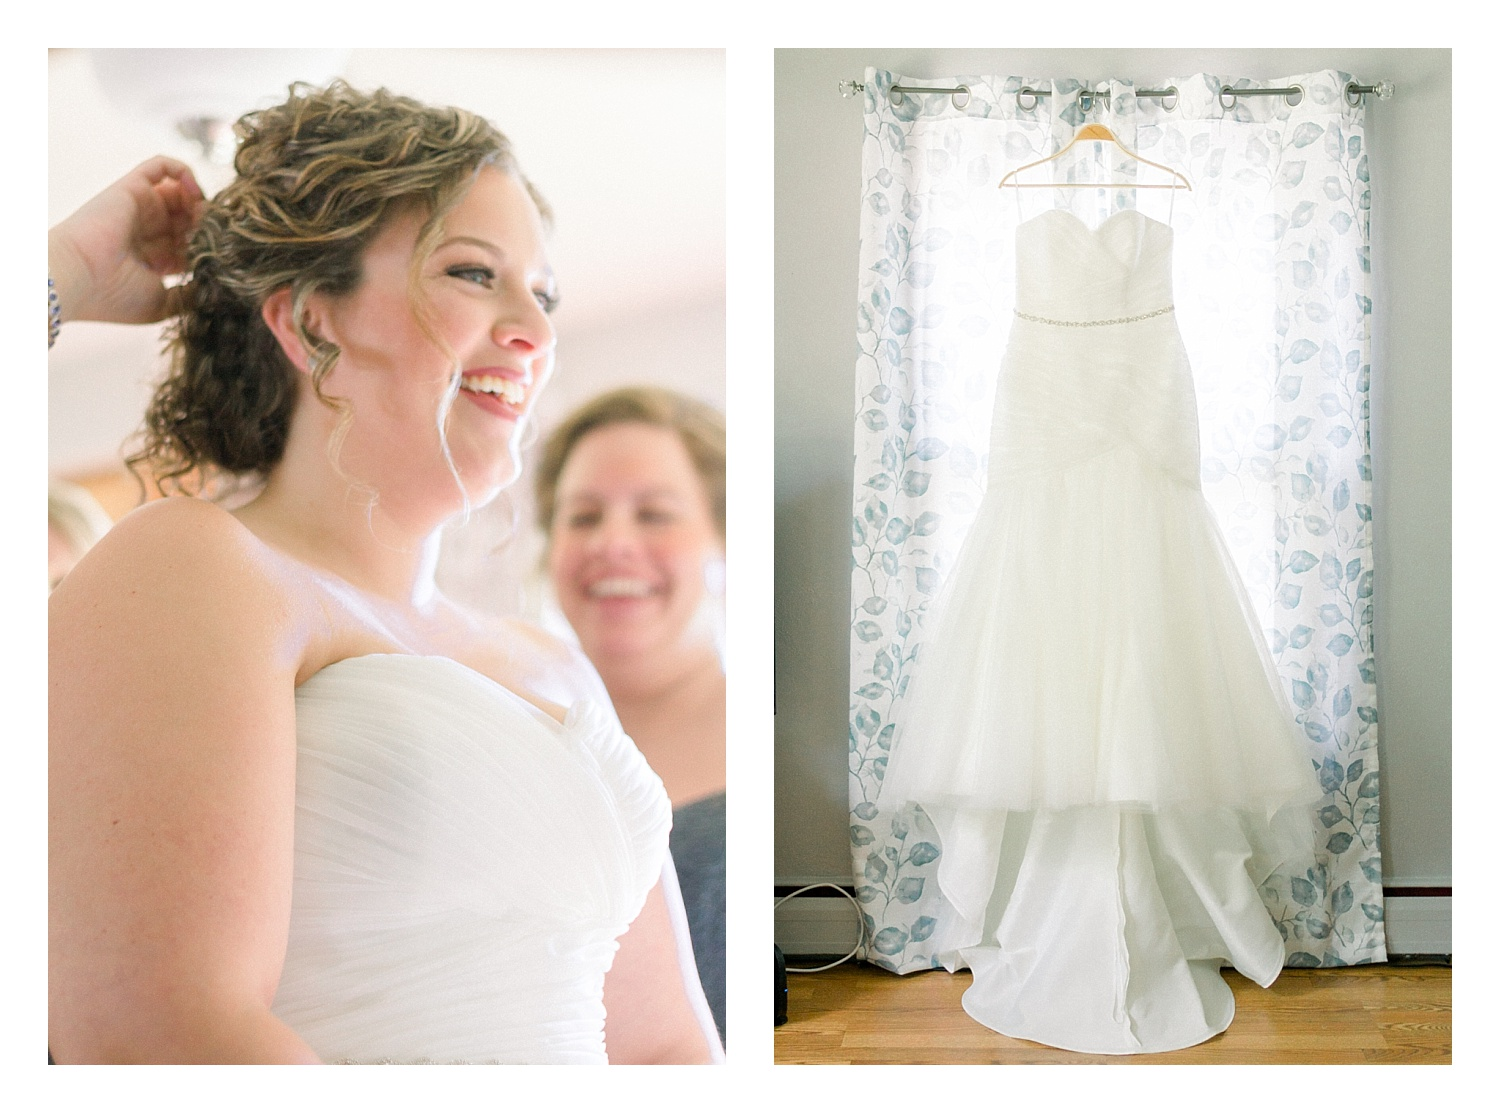 Becky and her Bridesmaids got ready at her Mothers home, where we had ample light and white walls .